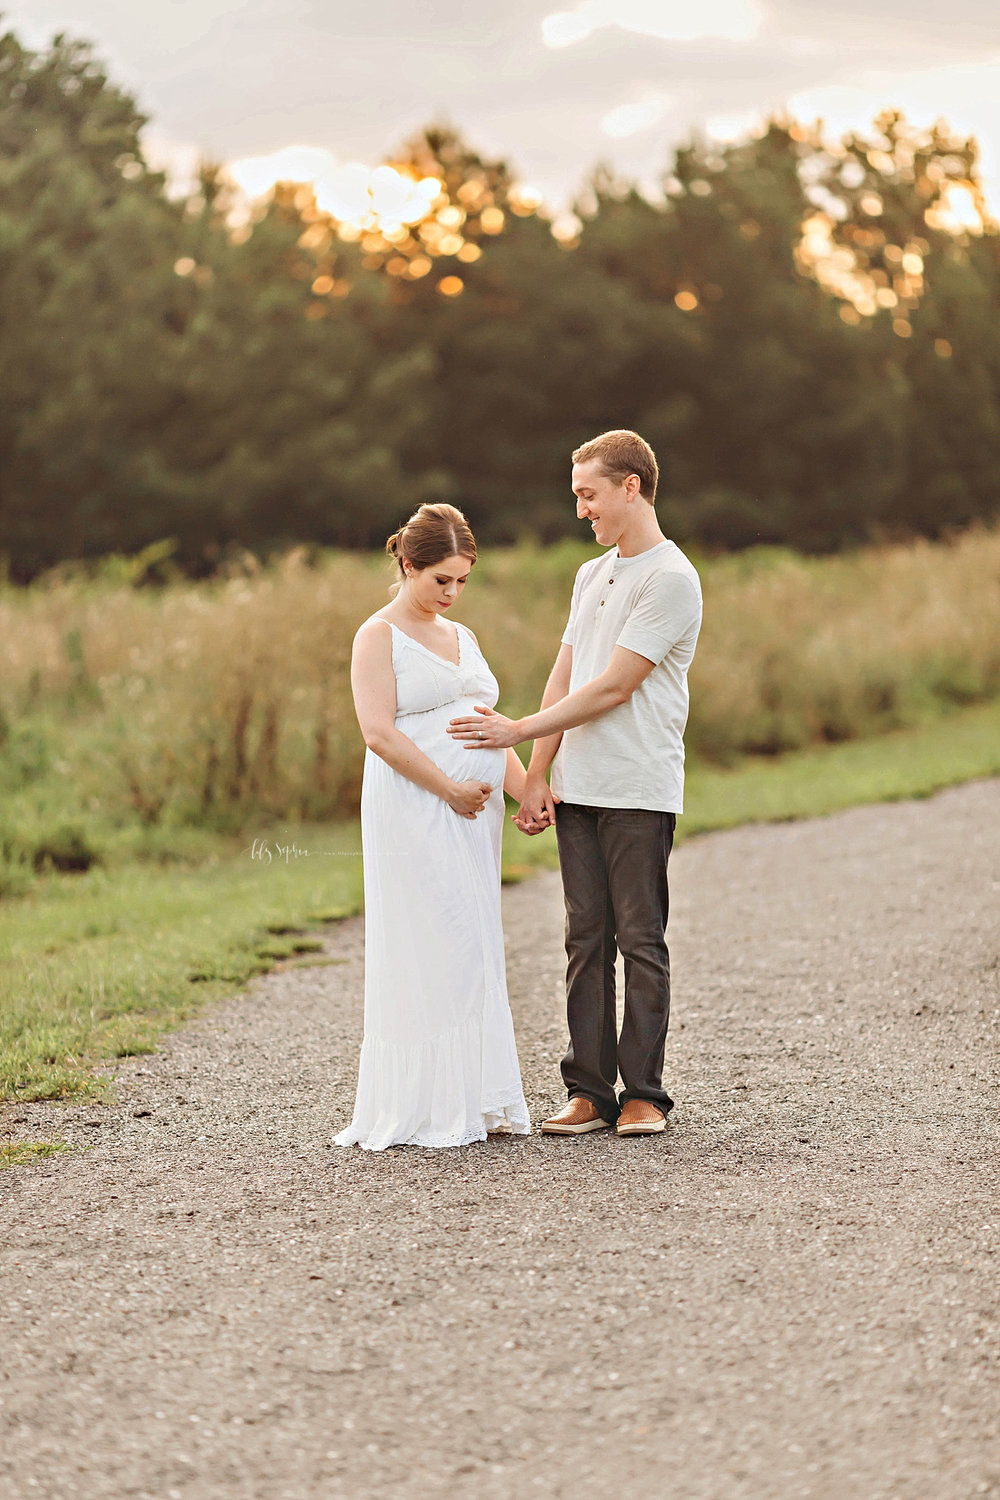 Image of a man, placing his hand on his wife's pregnant belly, while they are standing on a gravel path in a field.